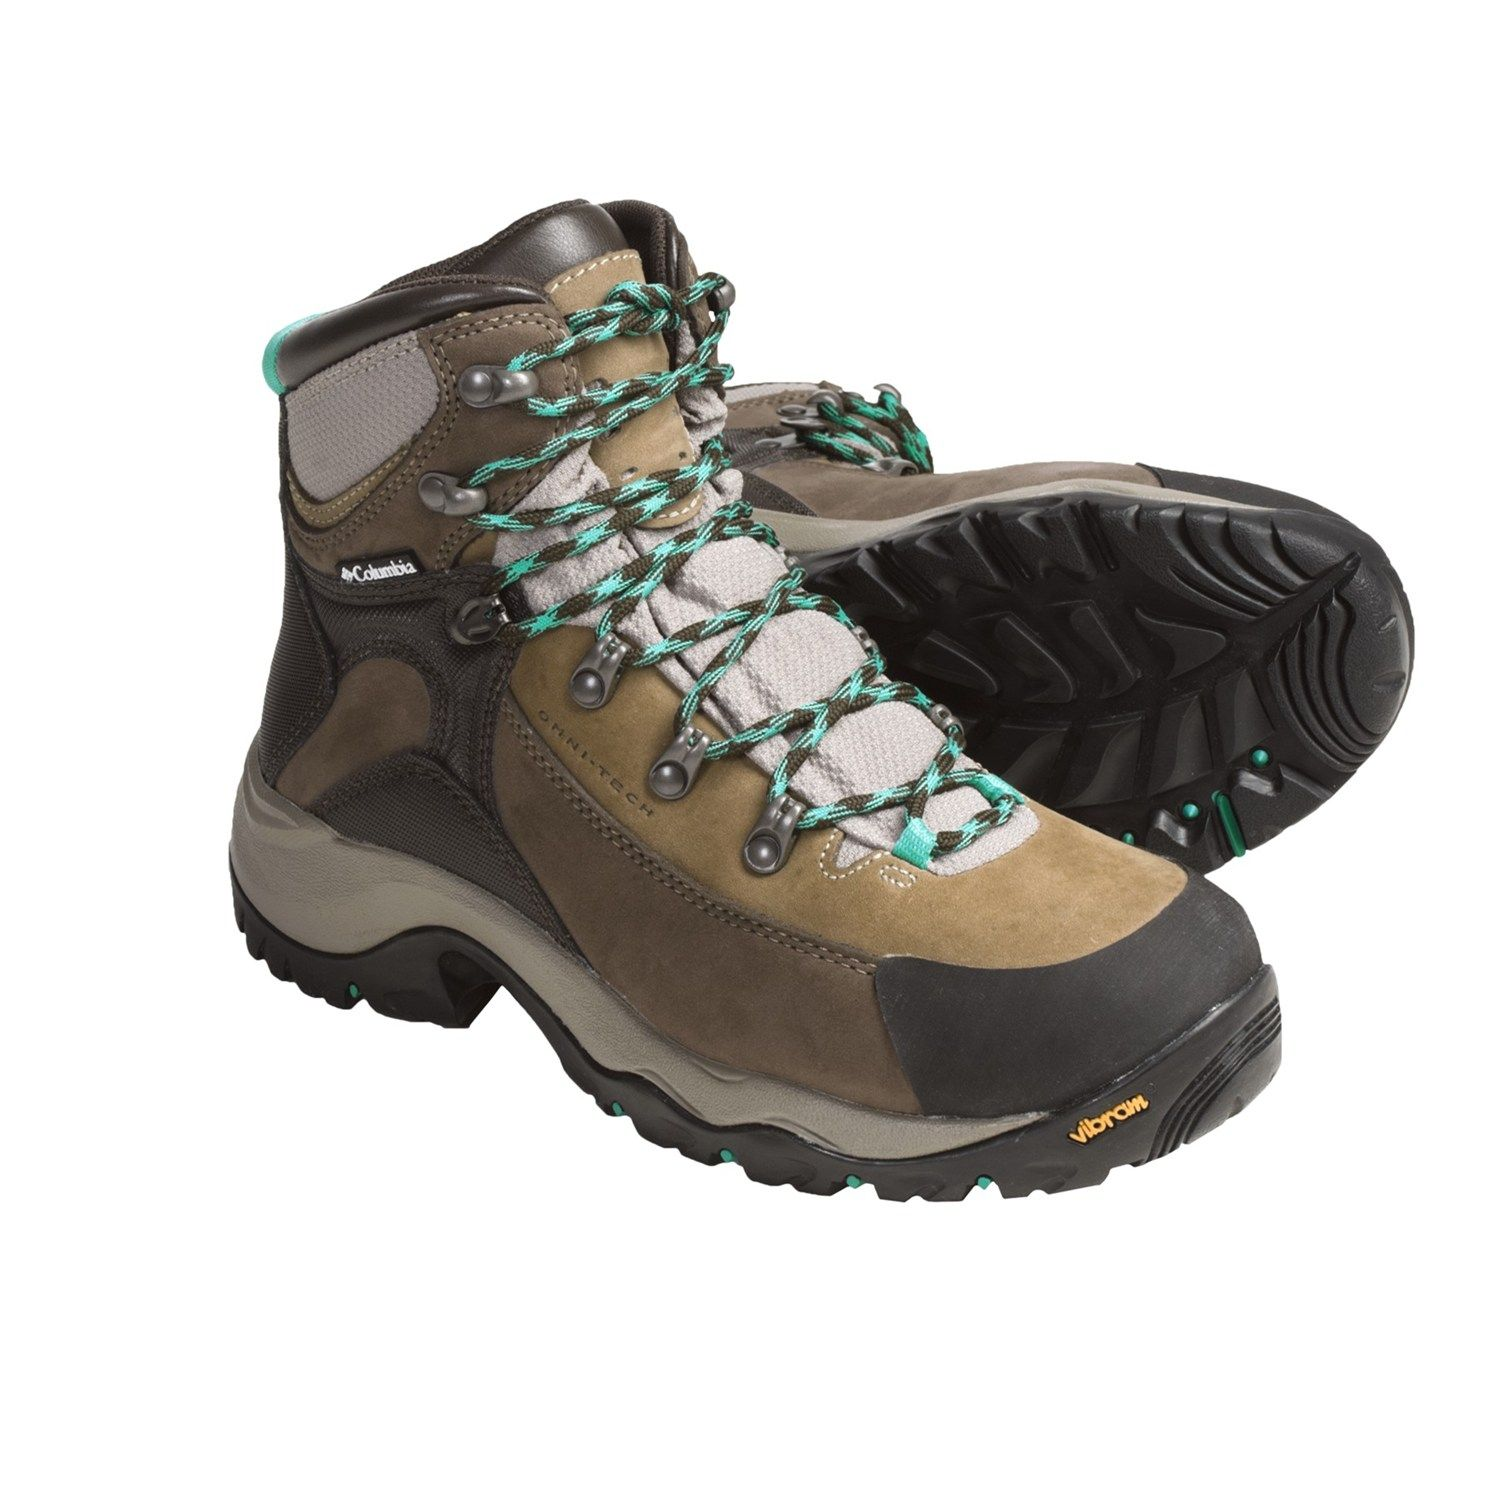 abc07842673 Columbia Sportswear Daska Pass Hiking Boots - Waterproof, Omni-Tech ...